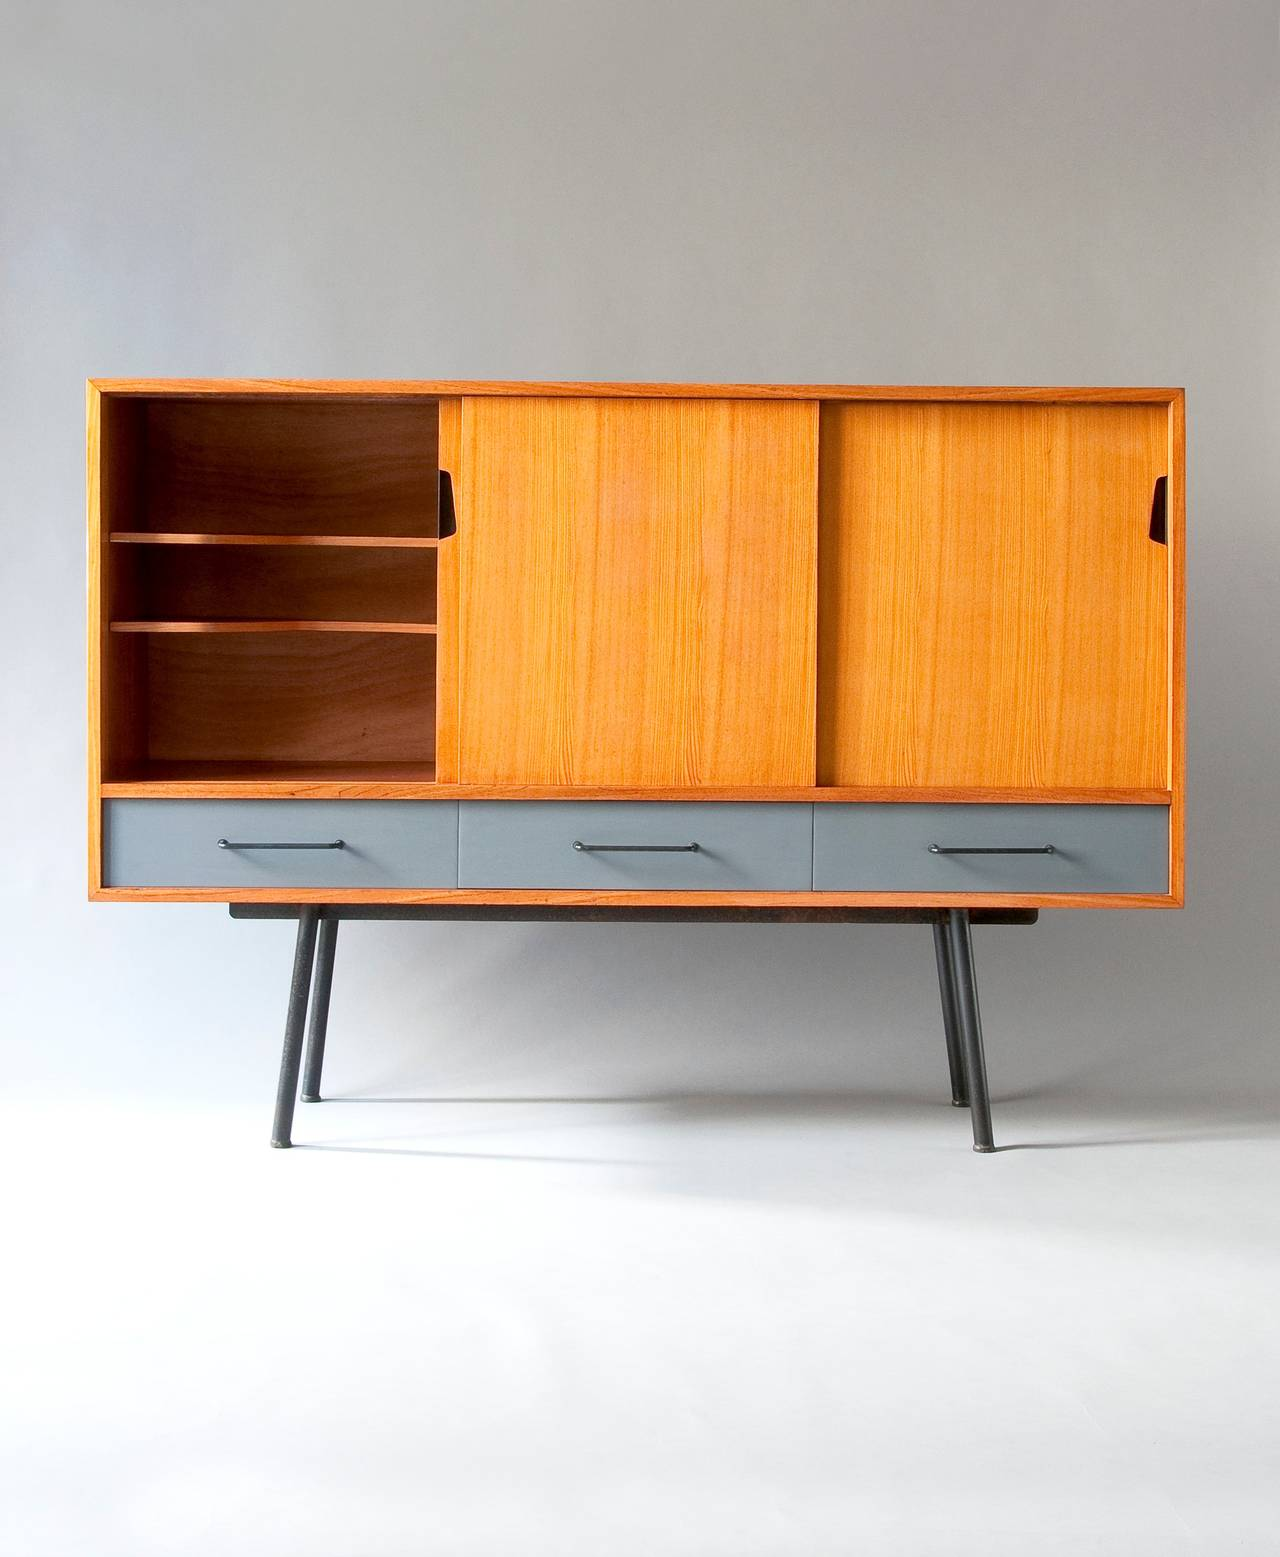 sideboard buffet 102 by janine abraham meubles tv edition 1952 for sale at 1stdibs. Black Bedroom Furniture Sets. Home Design Ideas